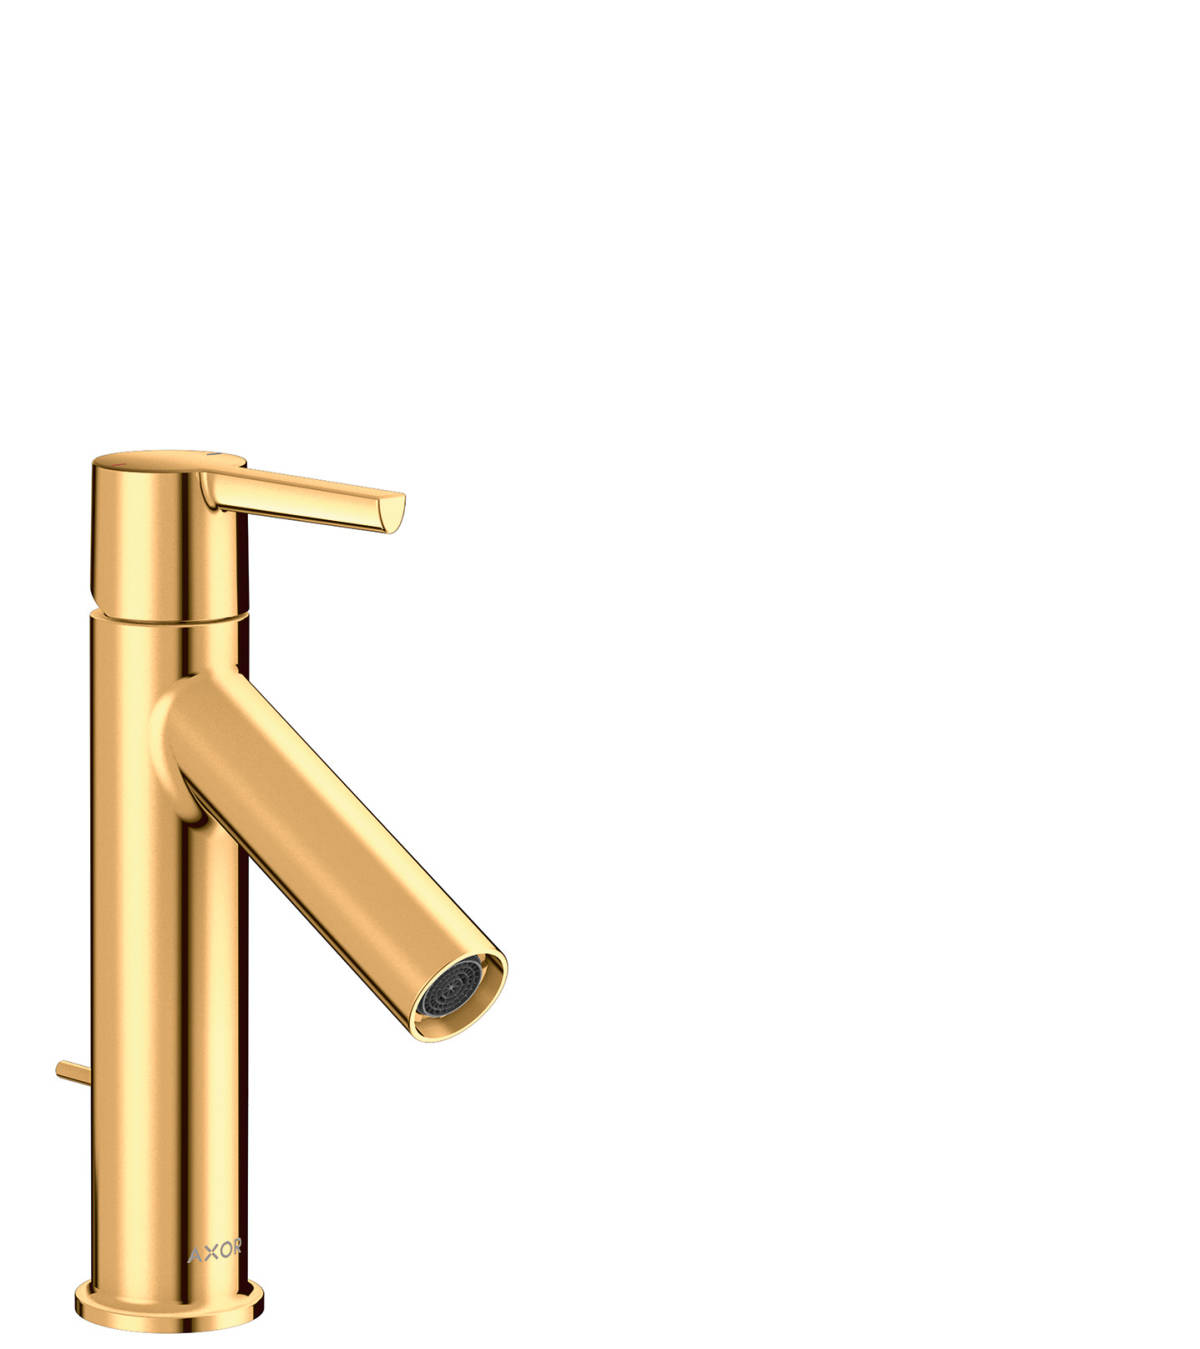 Single lever basin mixer 100 with lever handle and pop-up waste set, Polished Gold Optic, 10001990